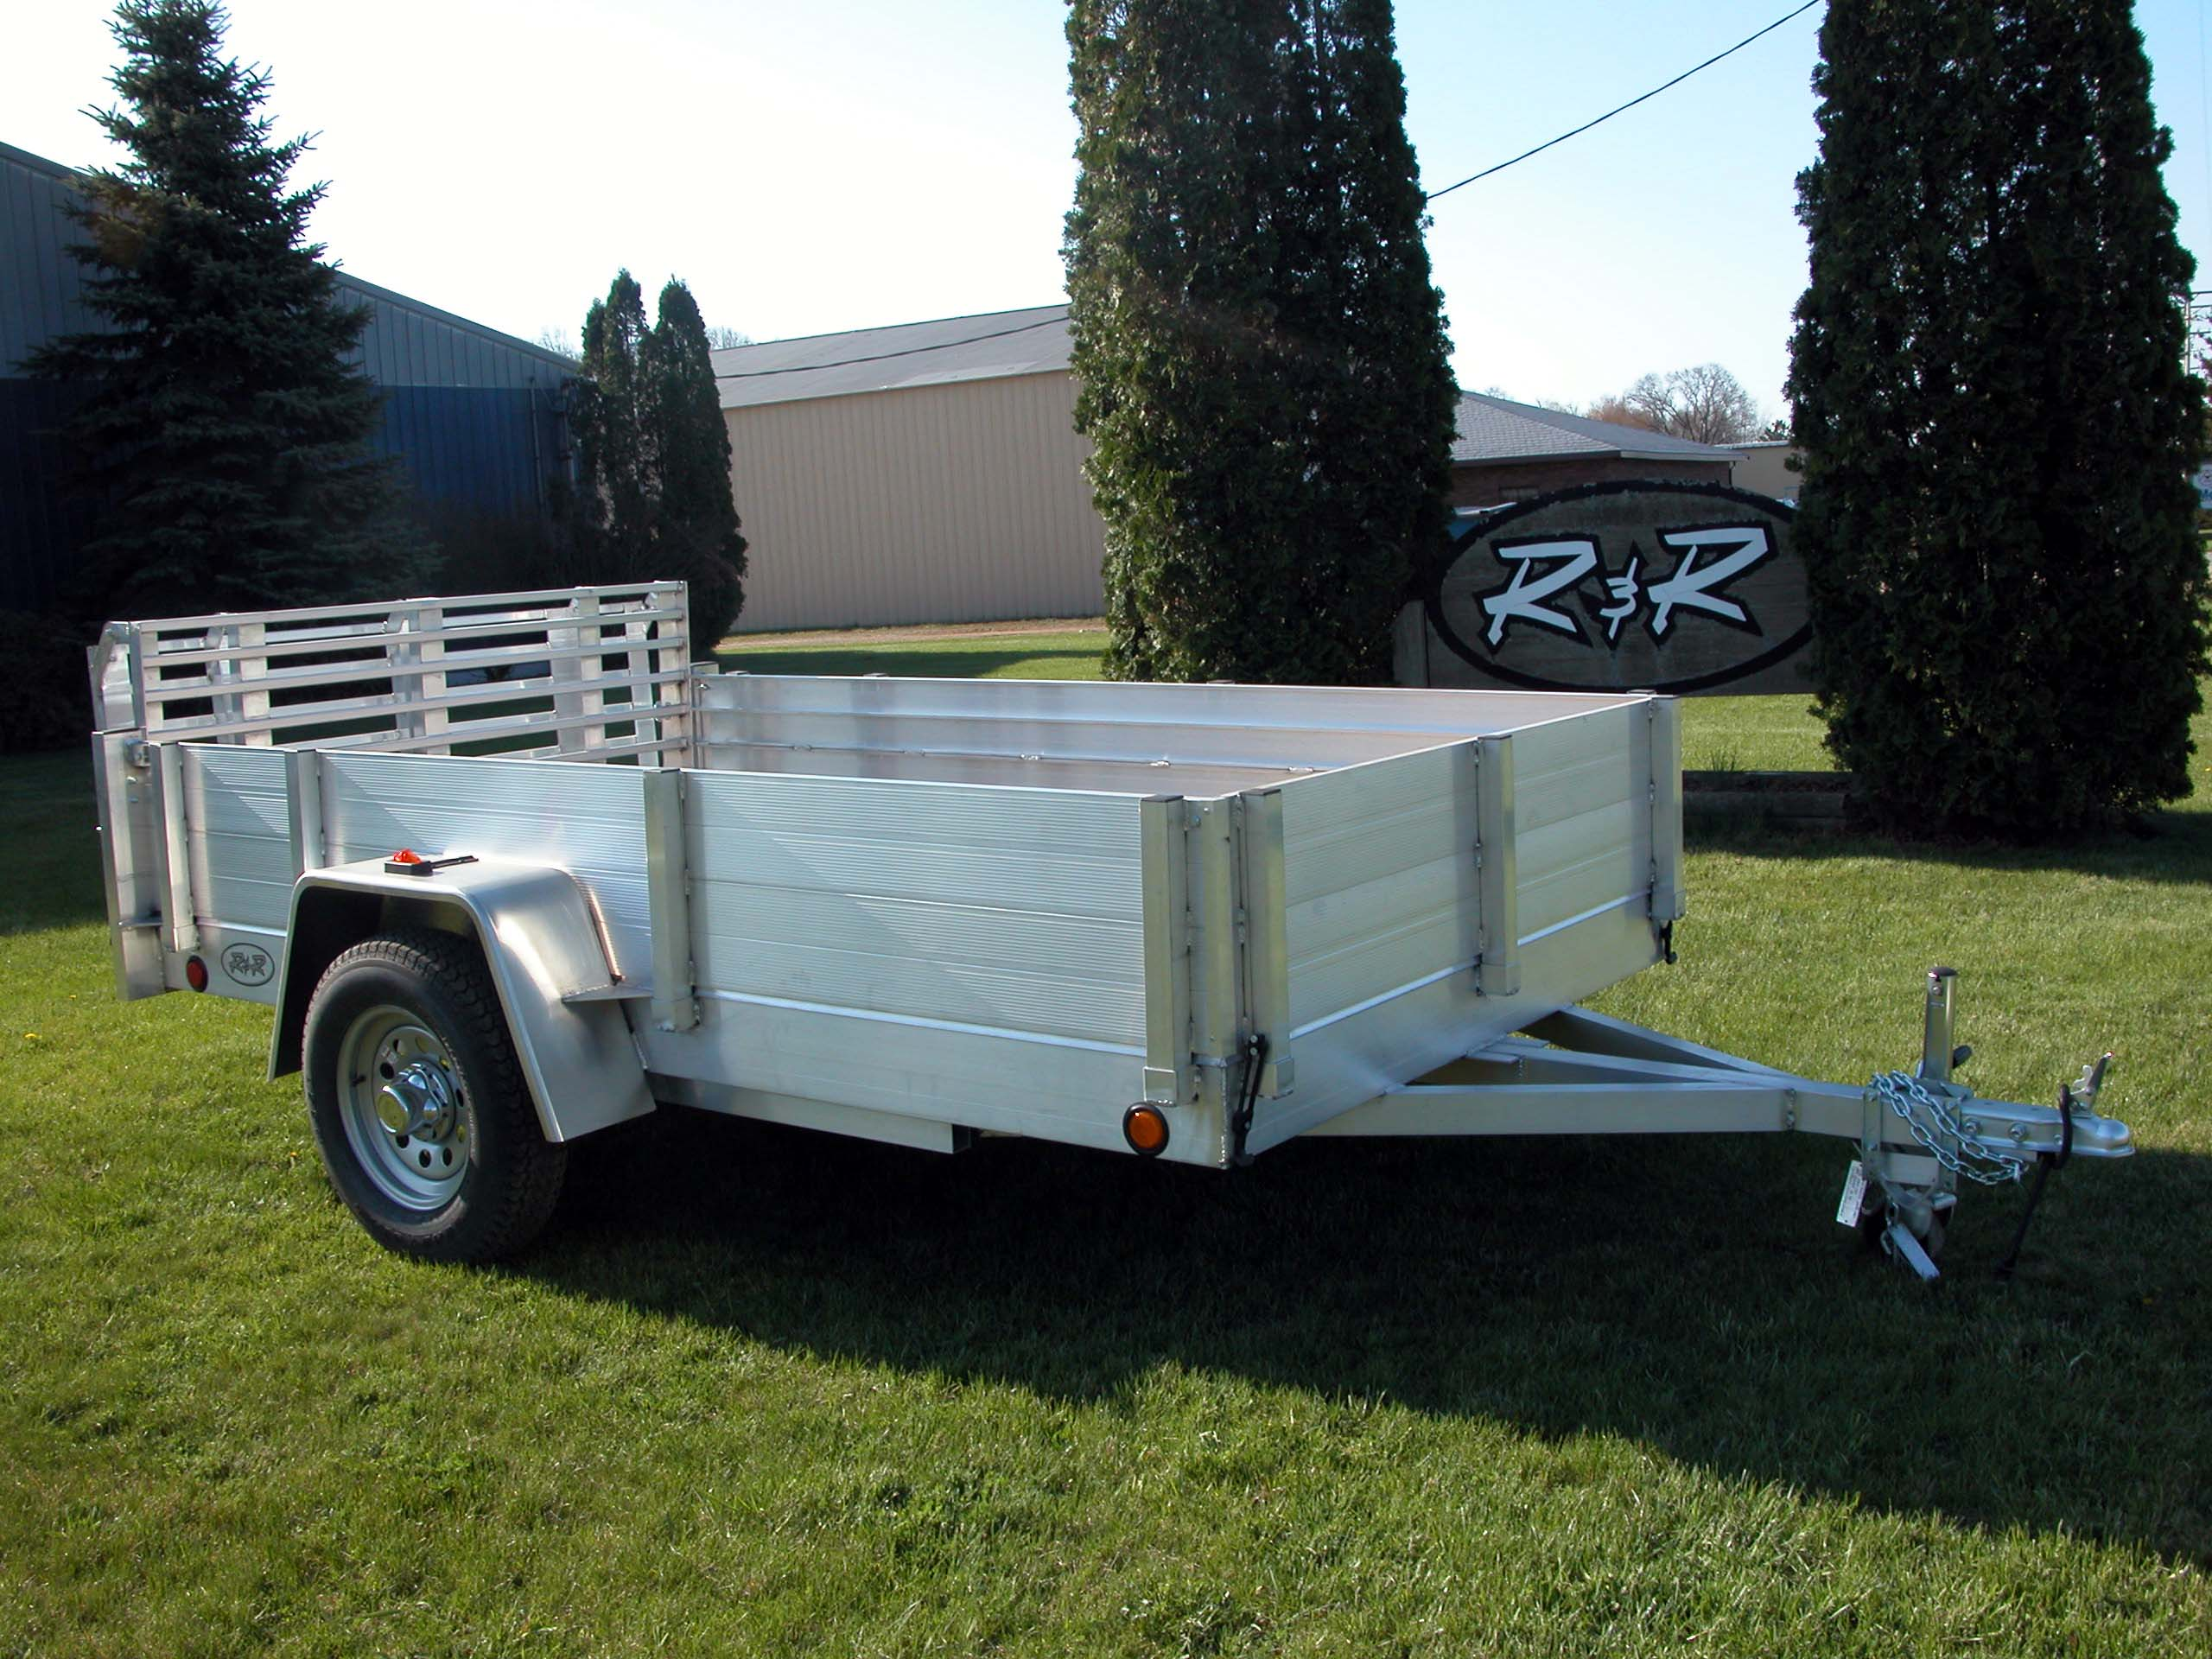 R and p carriages trailers parts service and rentals aluminum plank siding utility trailer with solid aluminum plank sciox Choice Image